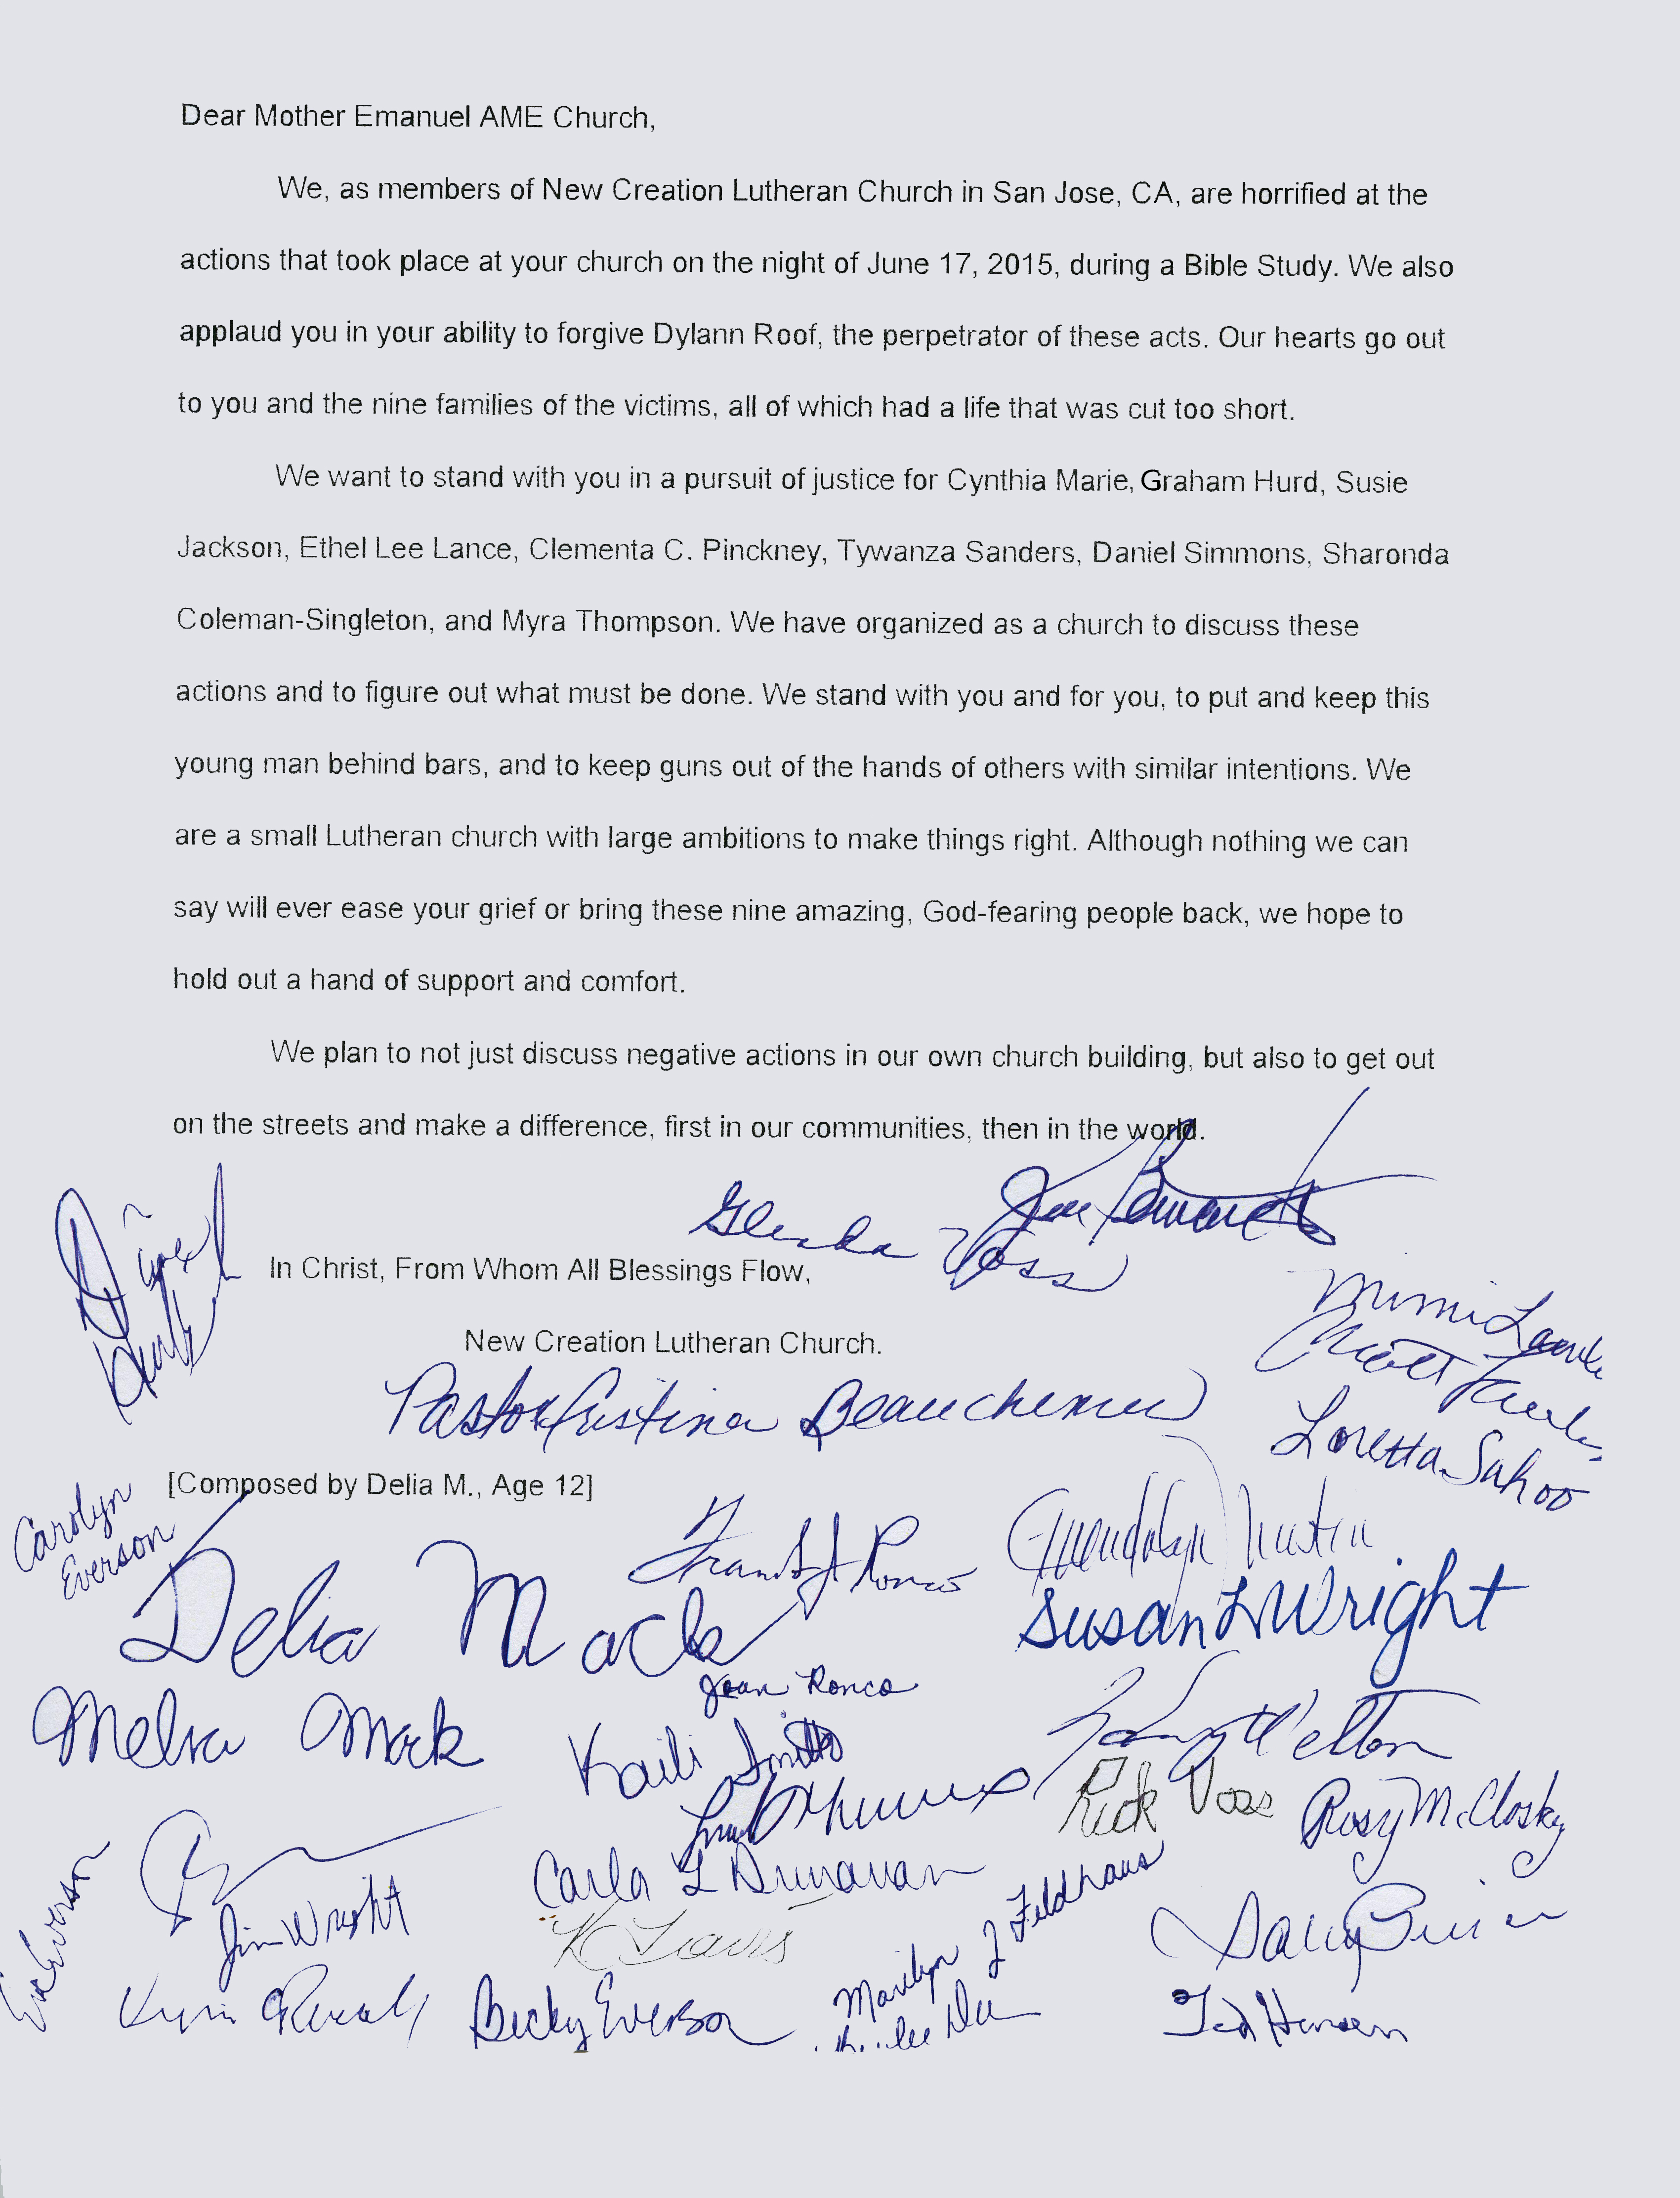 Letter to Mother Emanuel AME Church